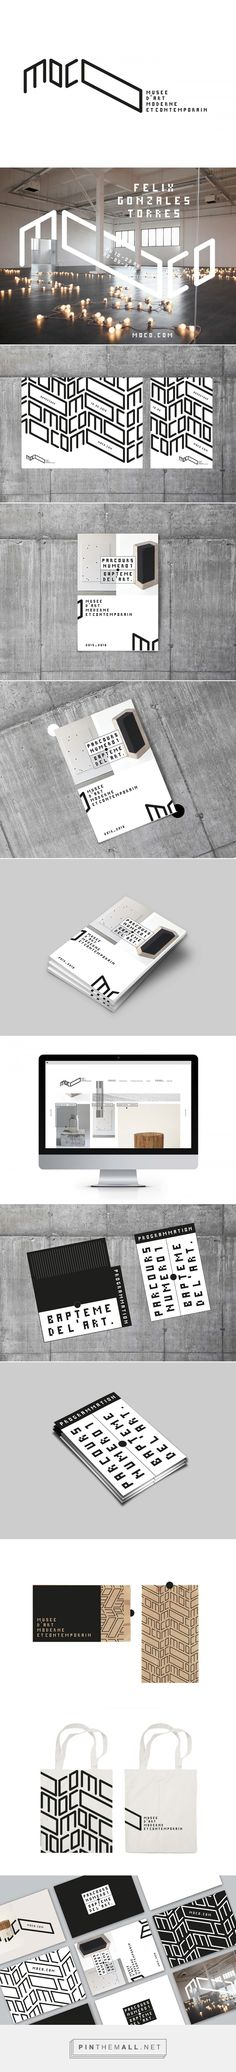 MOCO - VISUAL IDENTITY & BRANDING on Behance - created via…